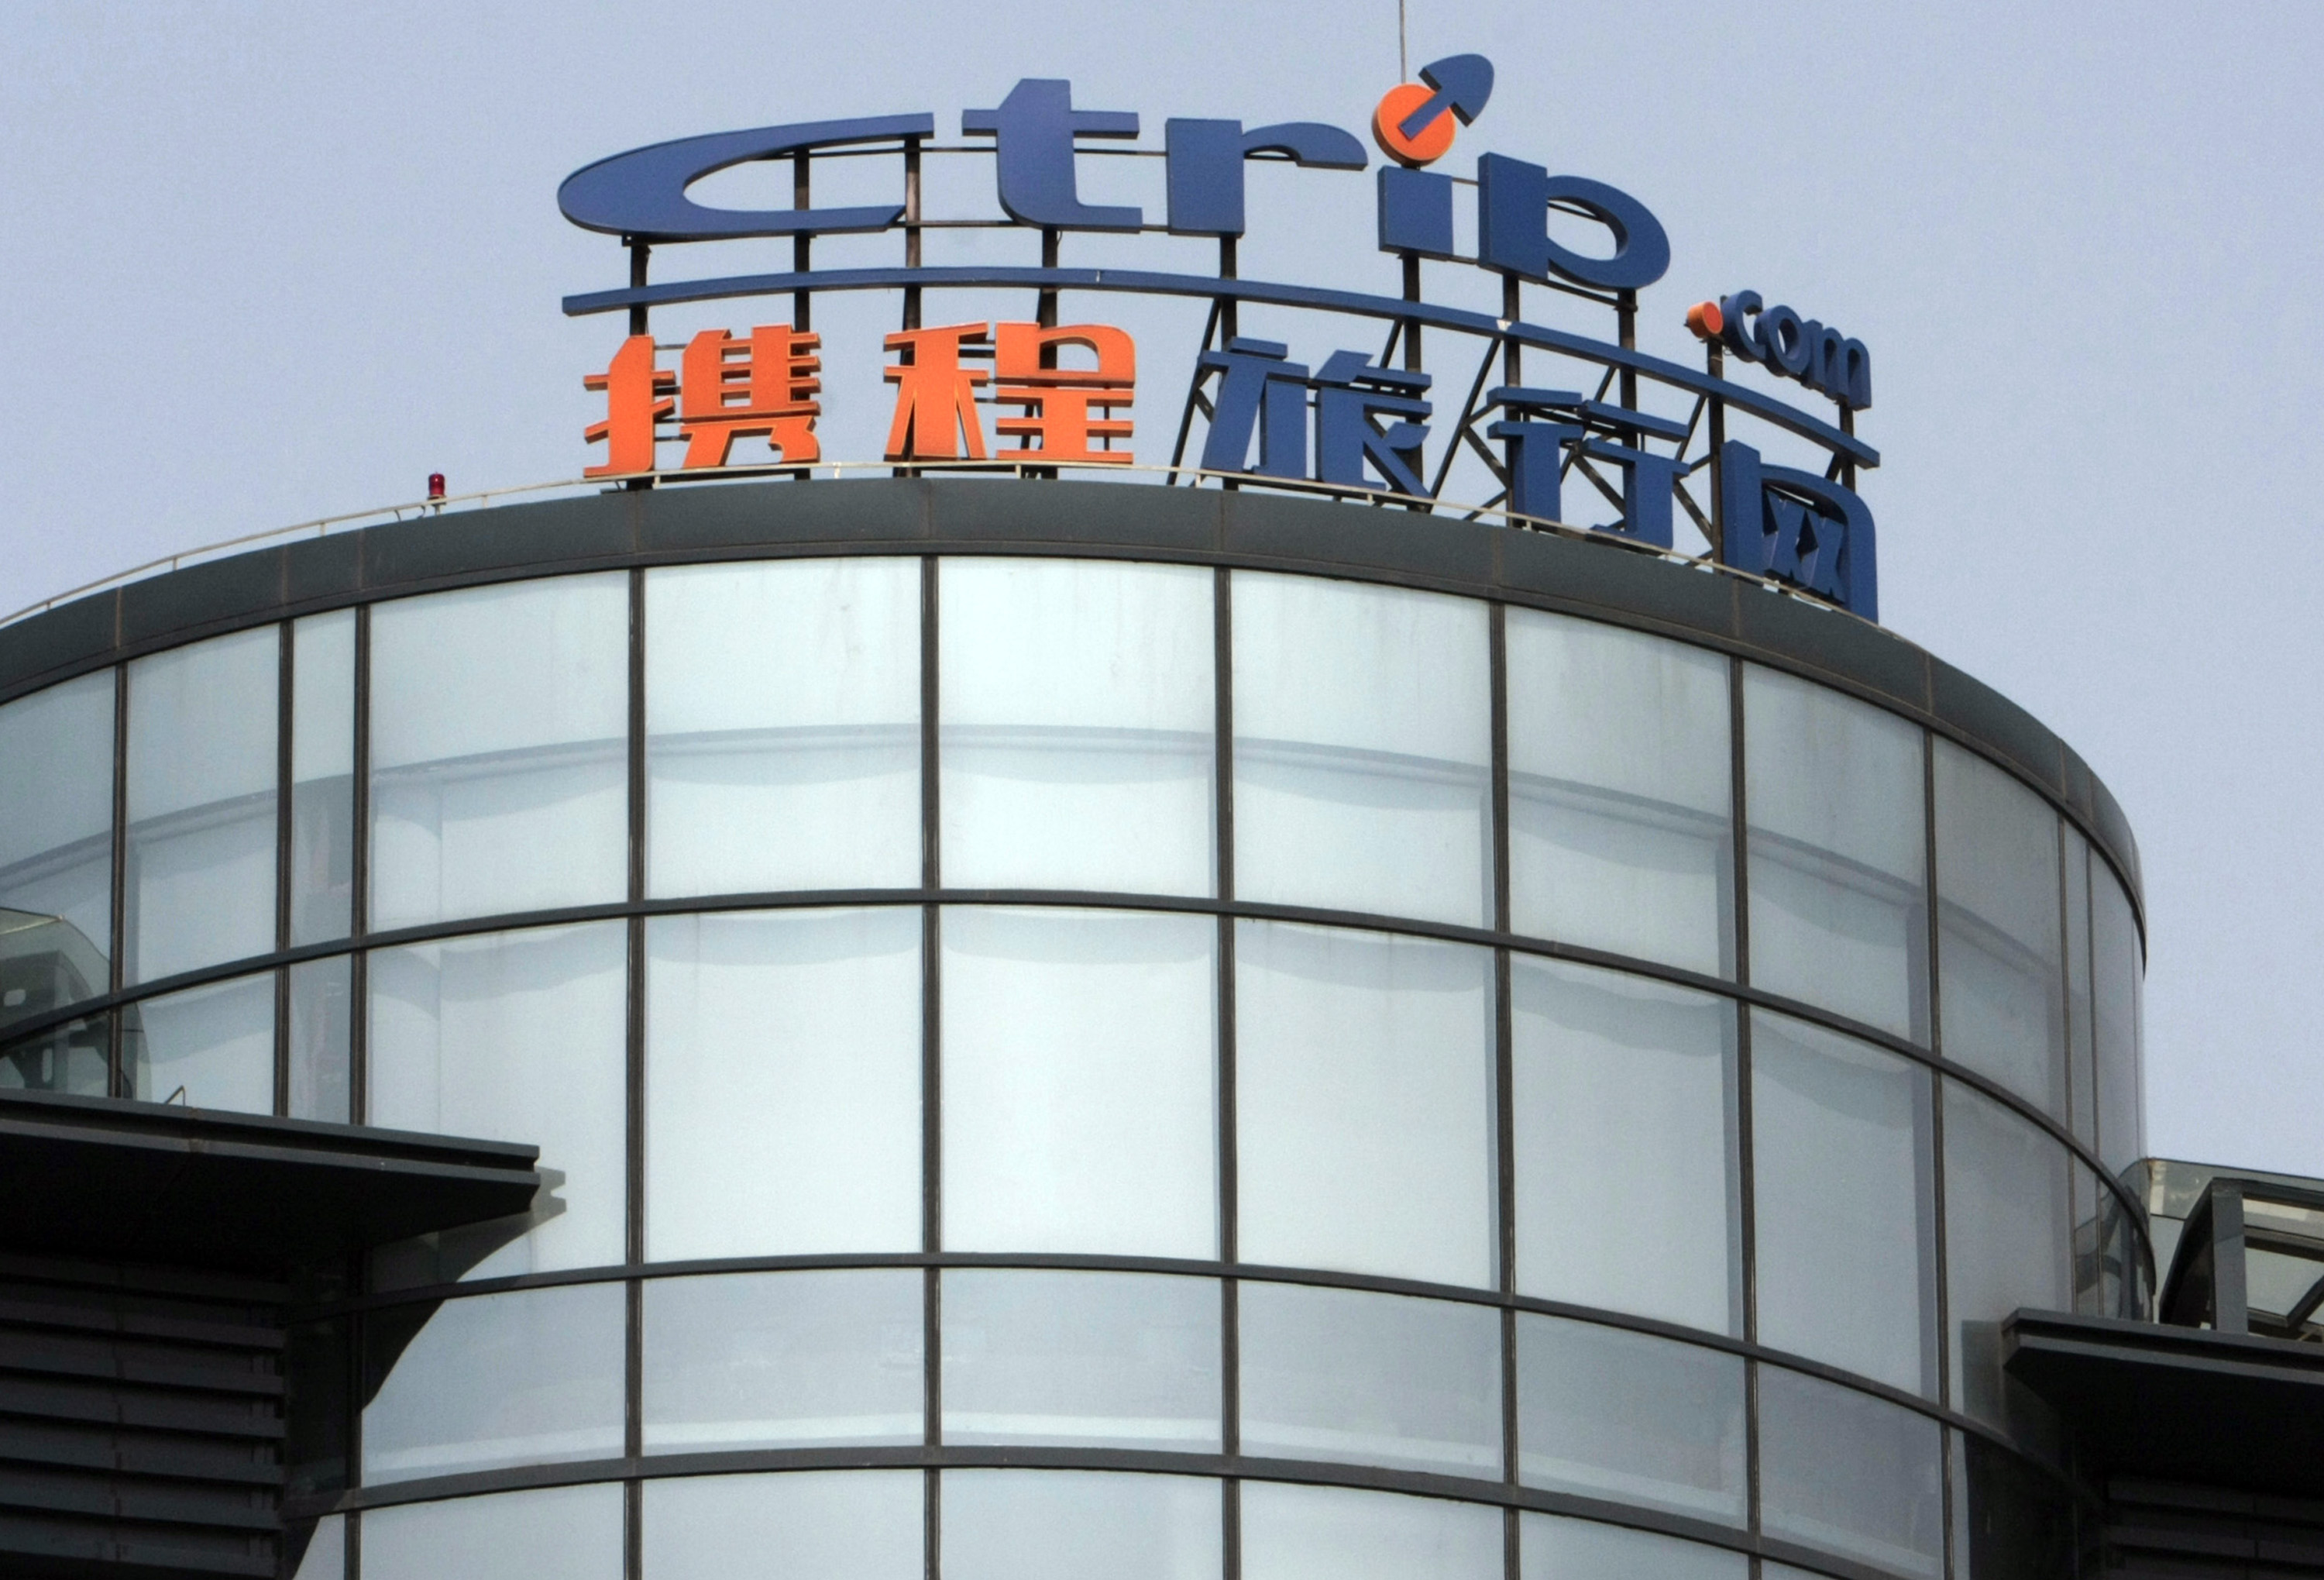 The Shanghai office for Ctrip.com International Ltd. stands